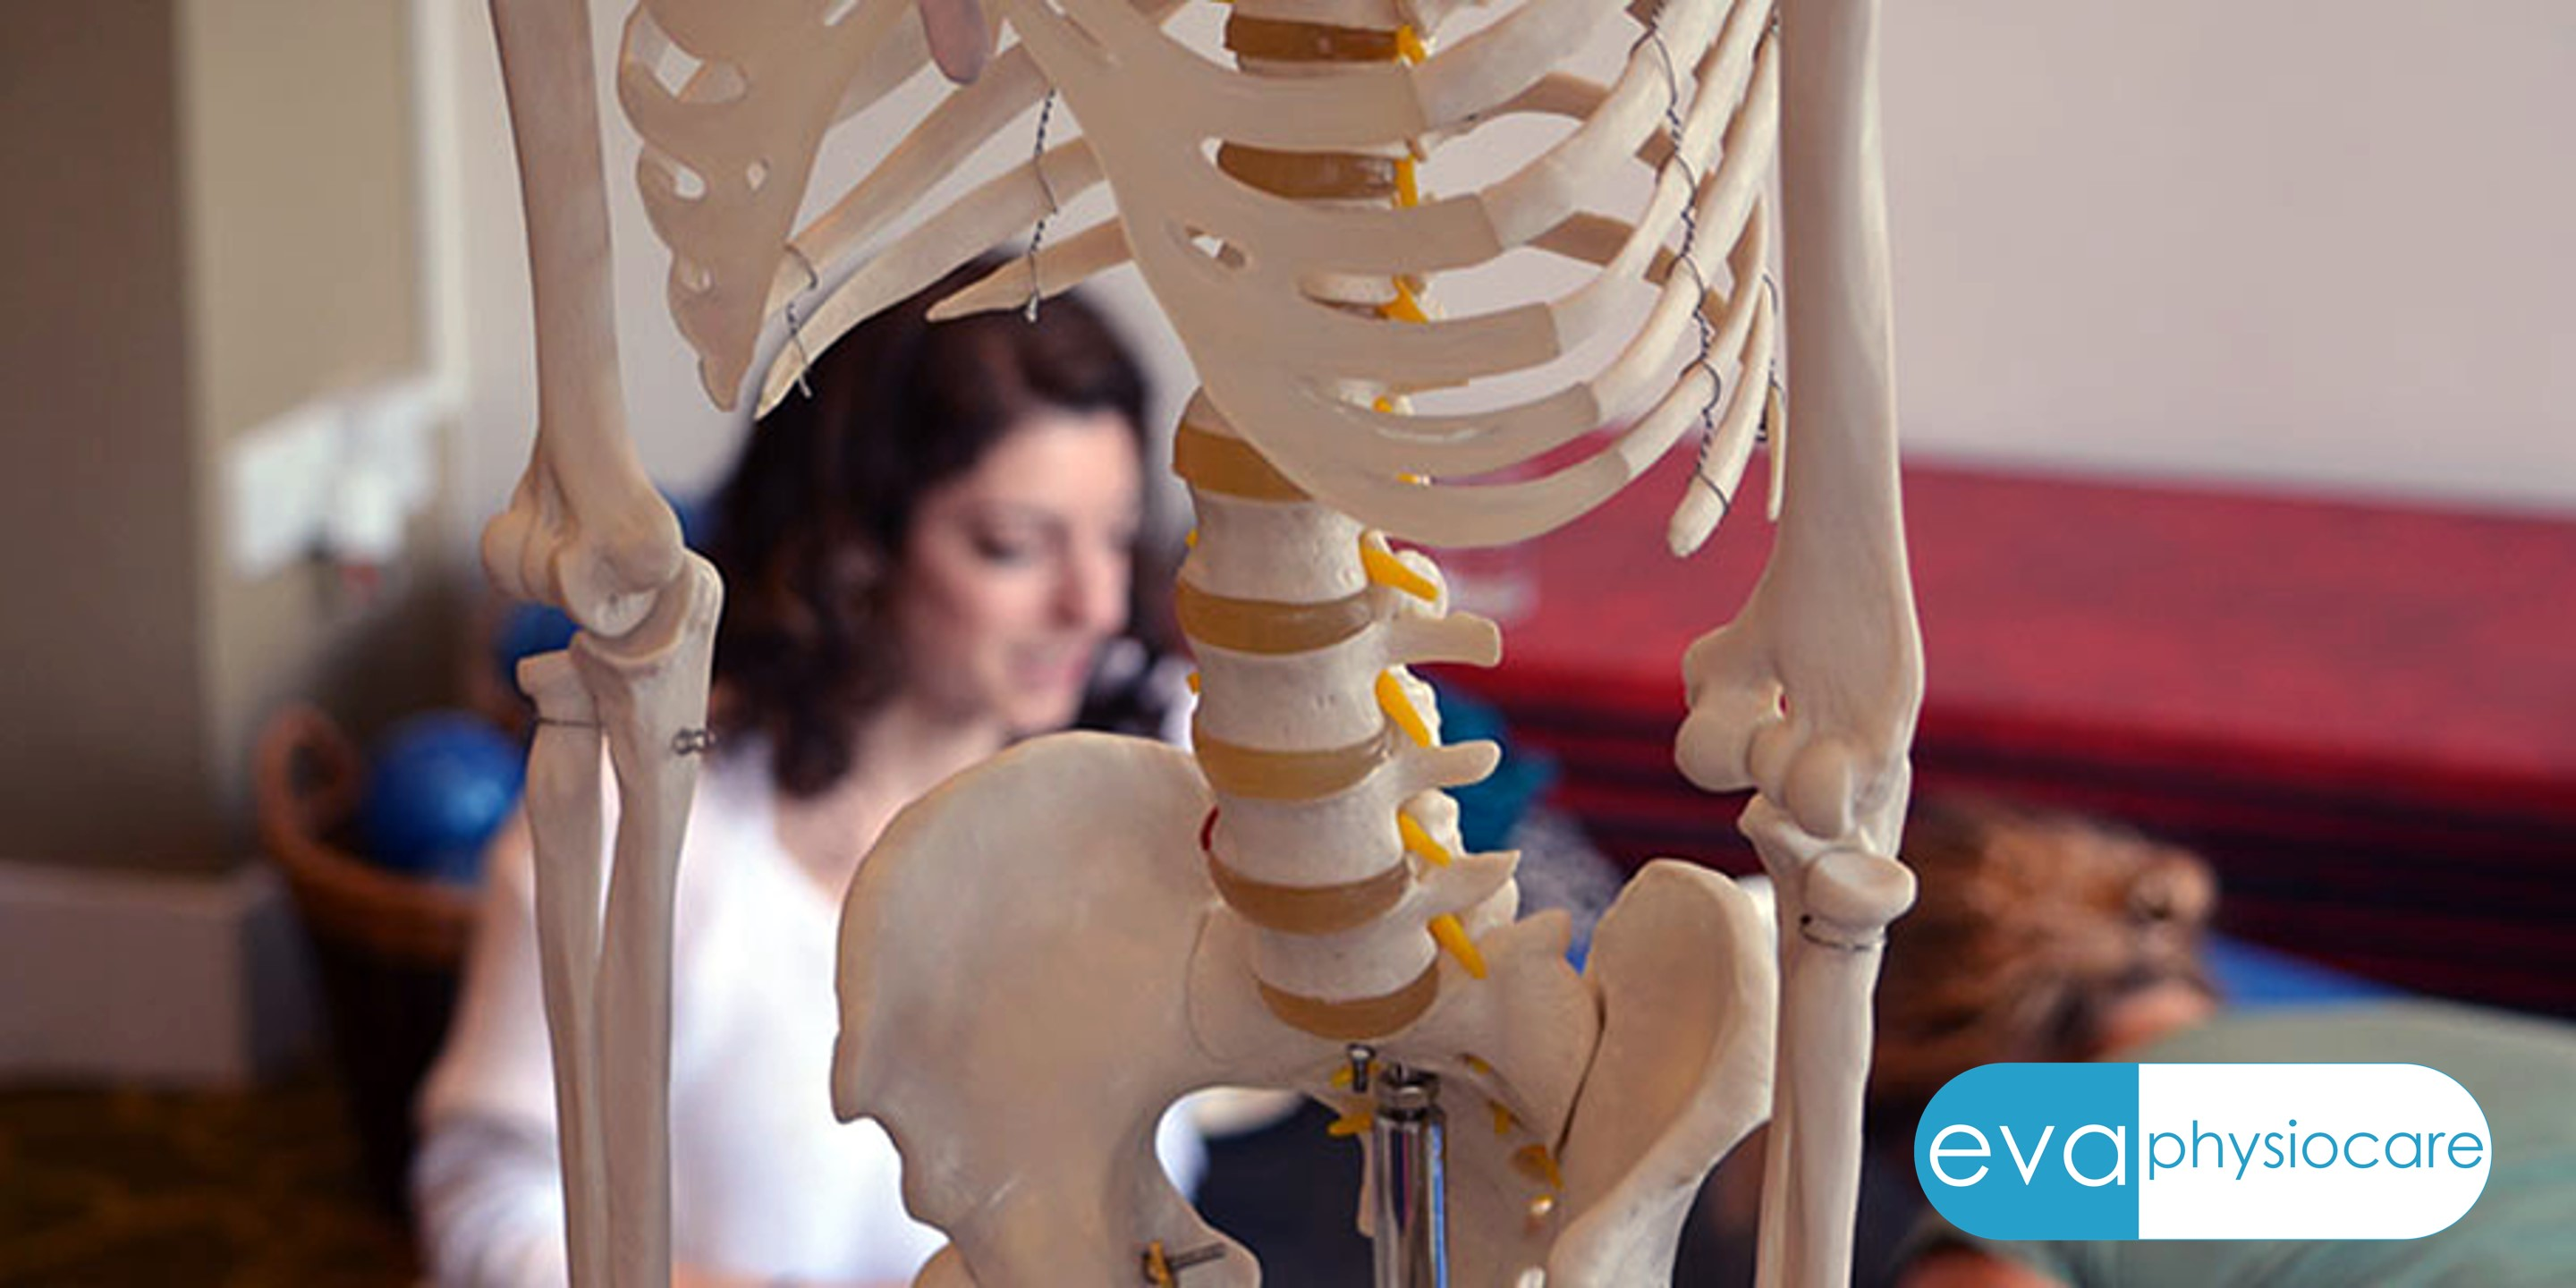 Osteoporosis prevention and care